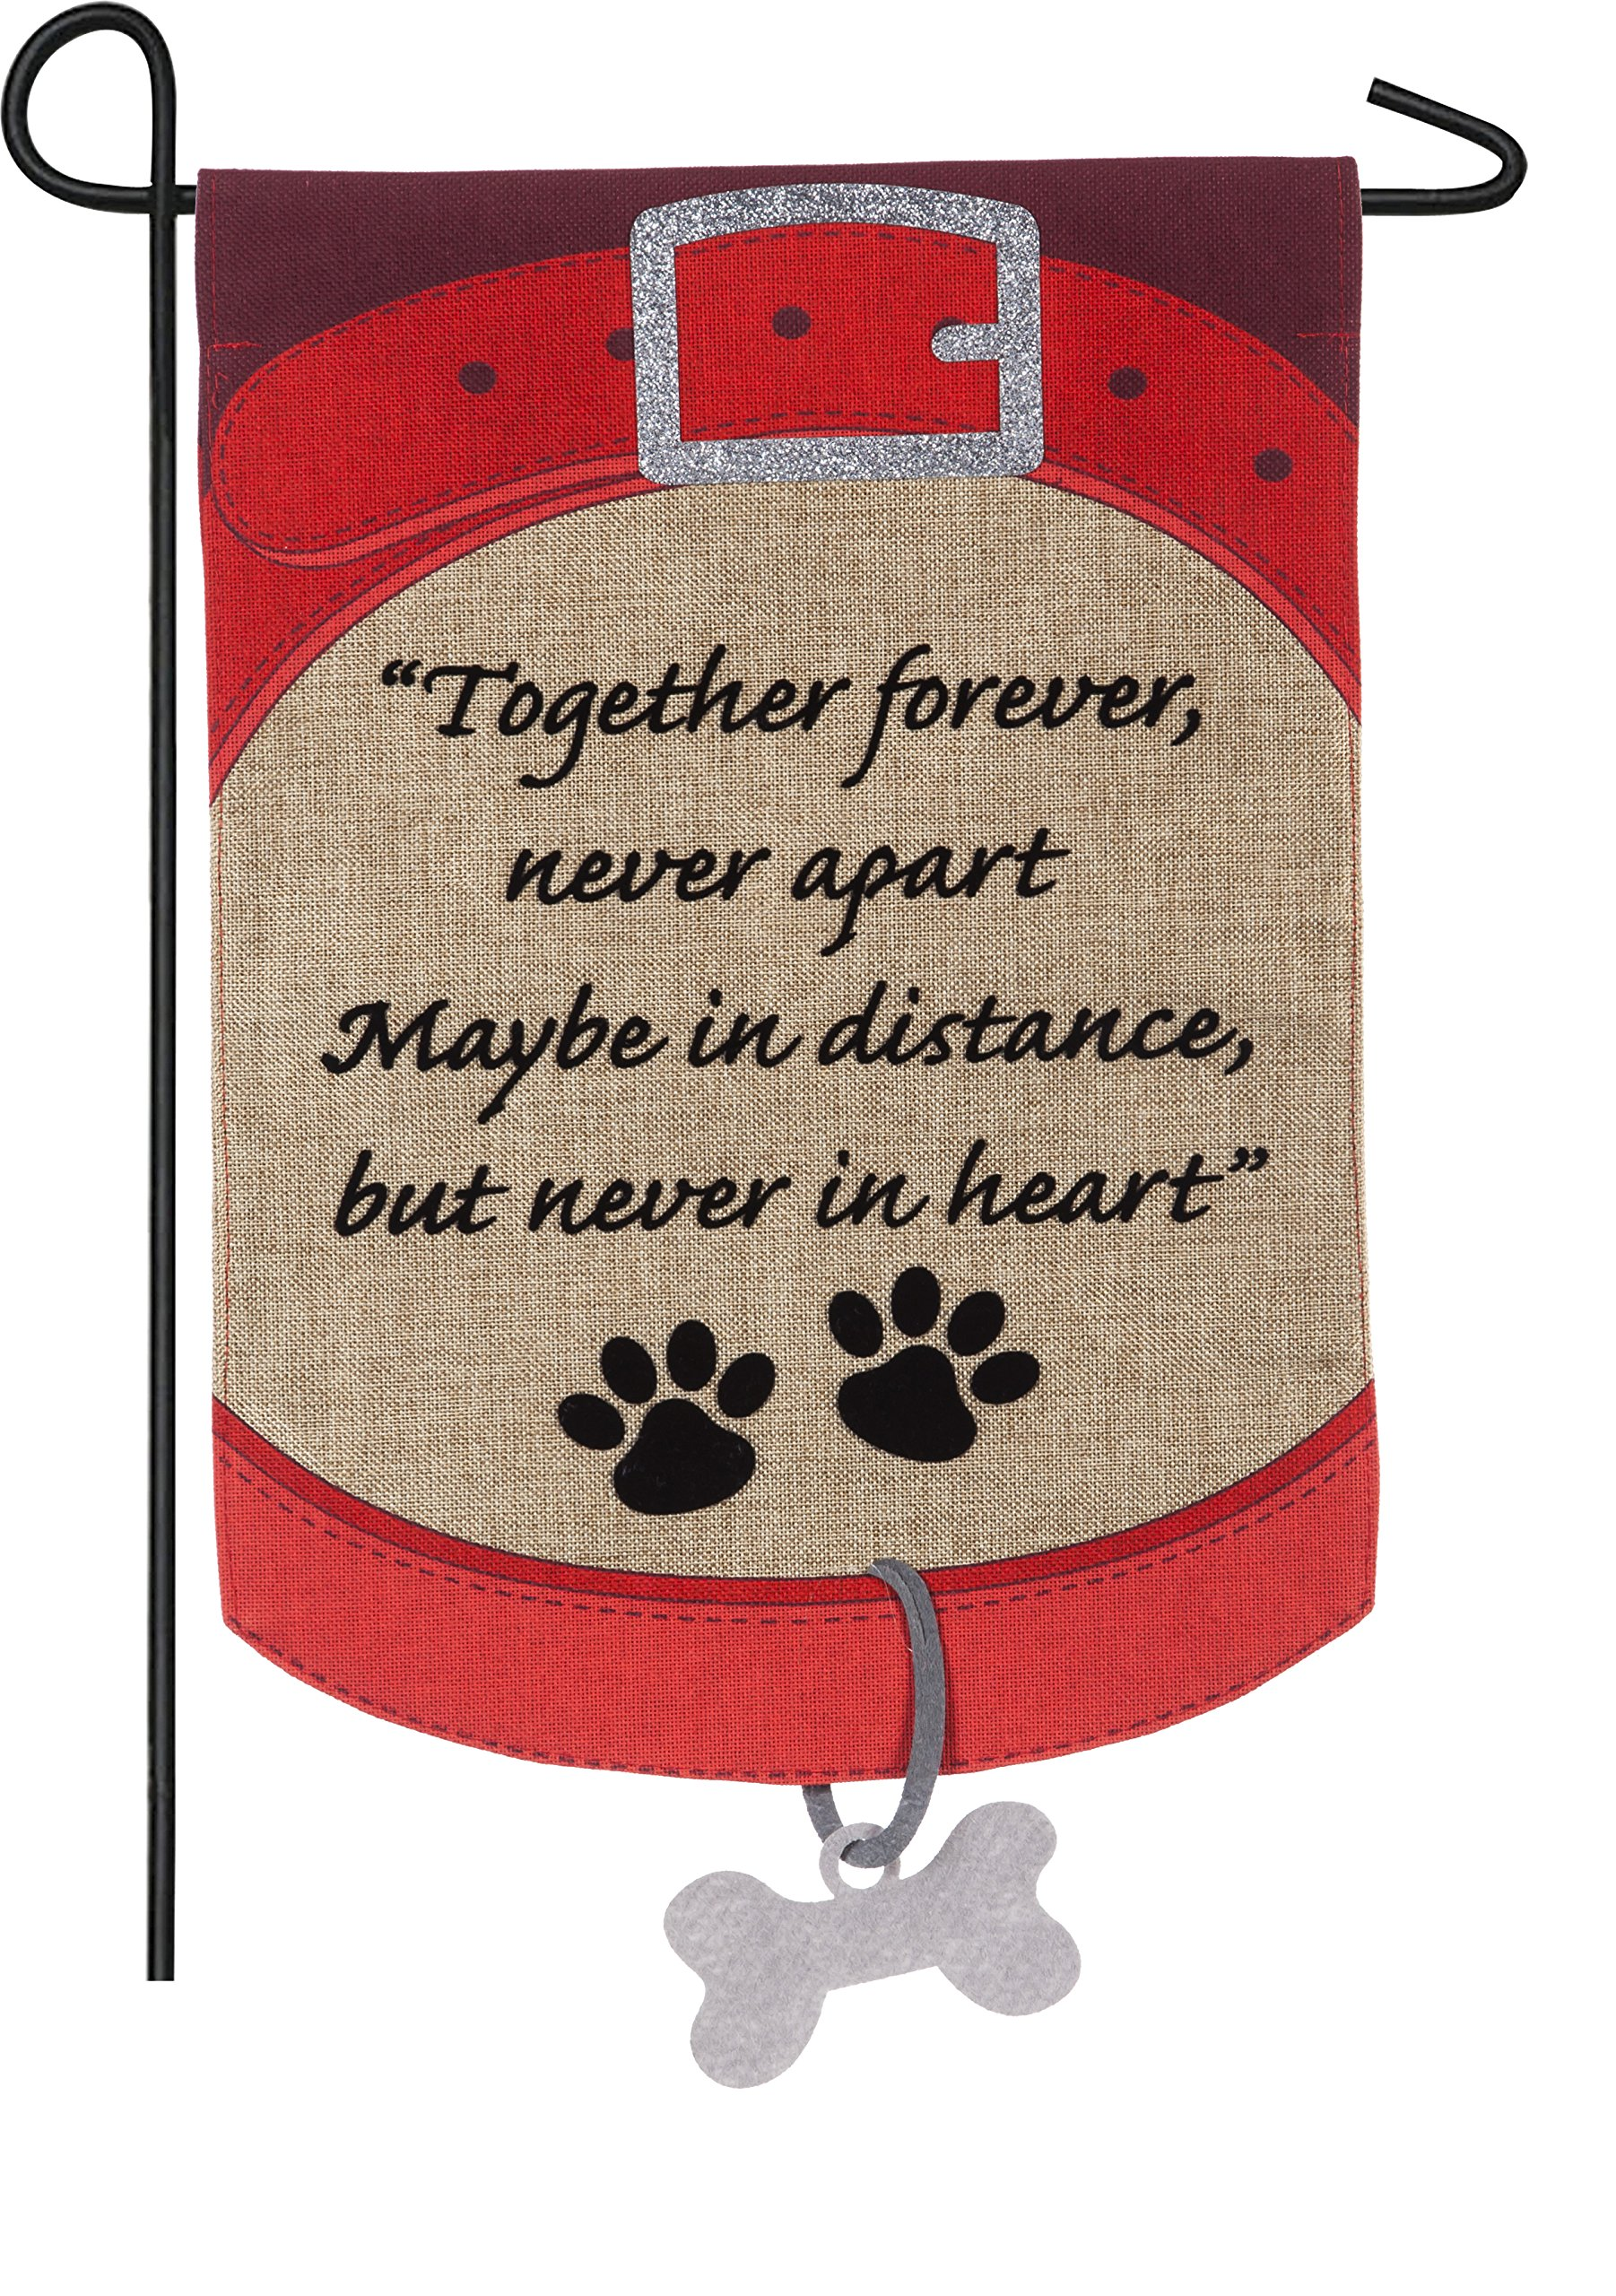 Evergreen Together Forever Pet Memorial Outdoor Safe Double Sided Burlap Garden Flag, 12.5 x 18 Inches